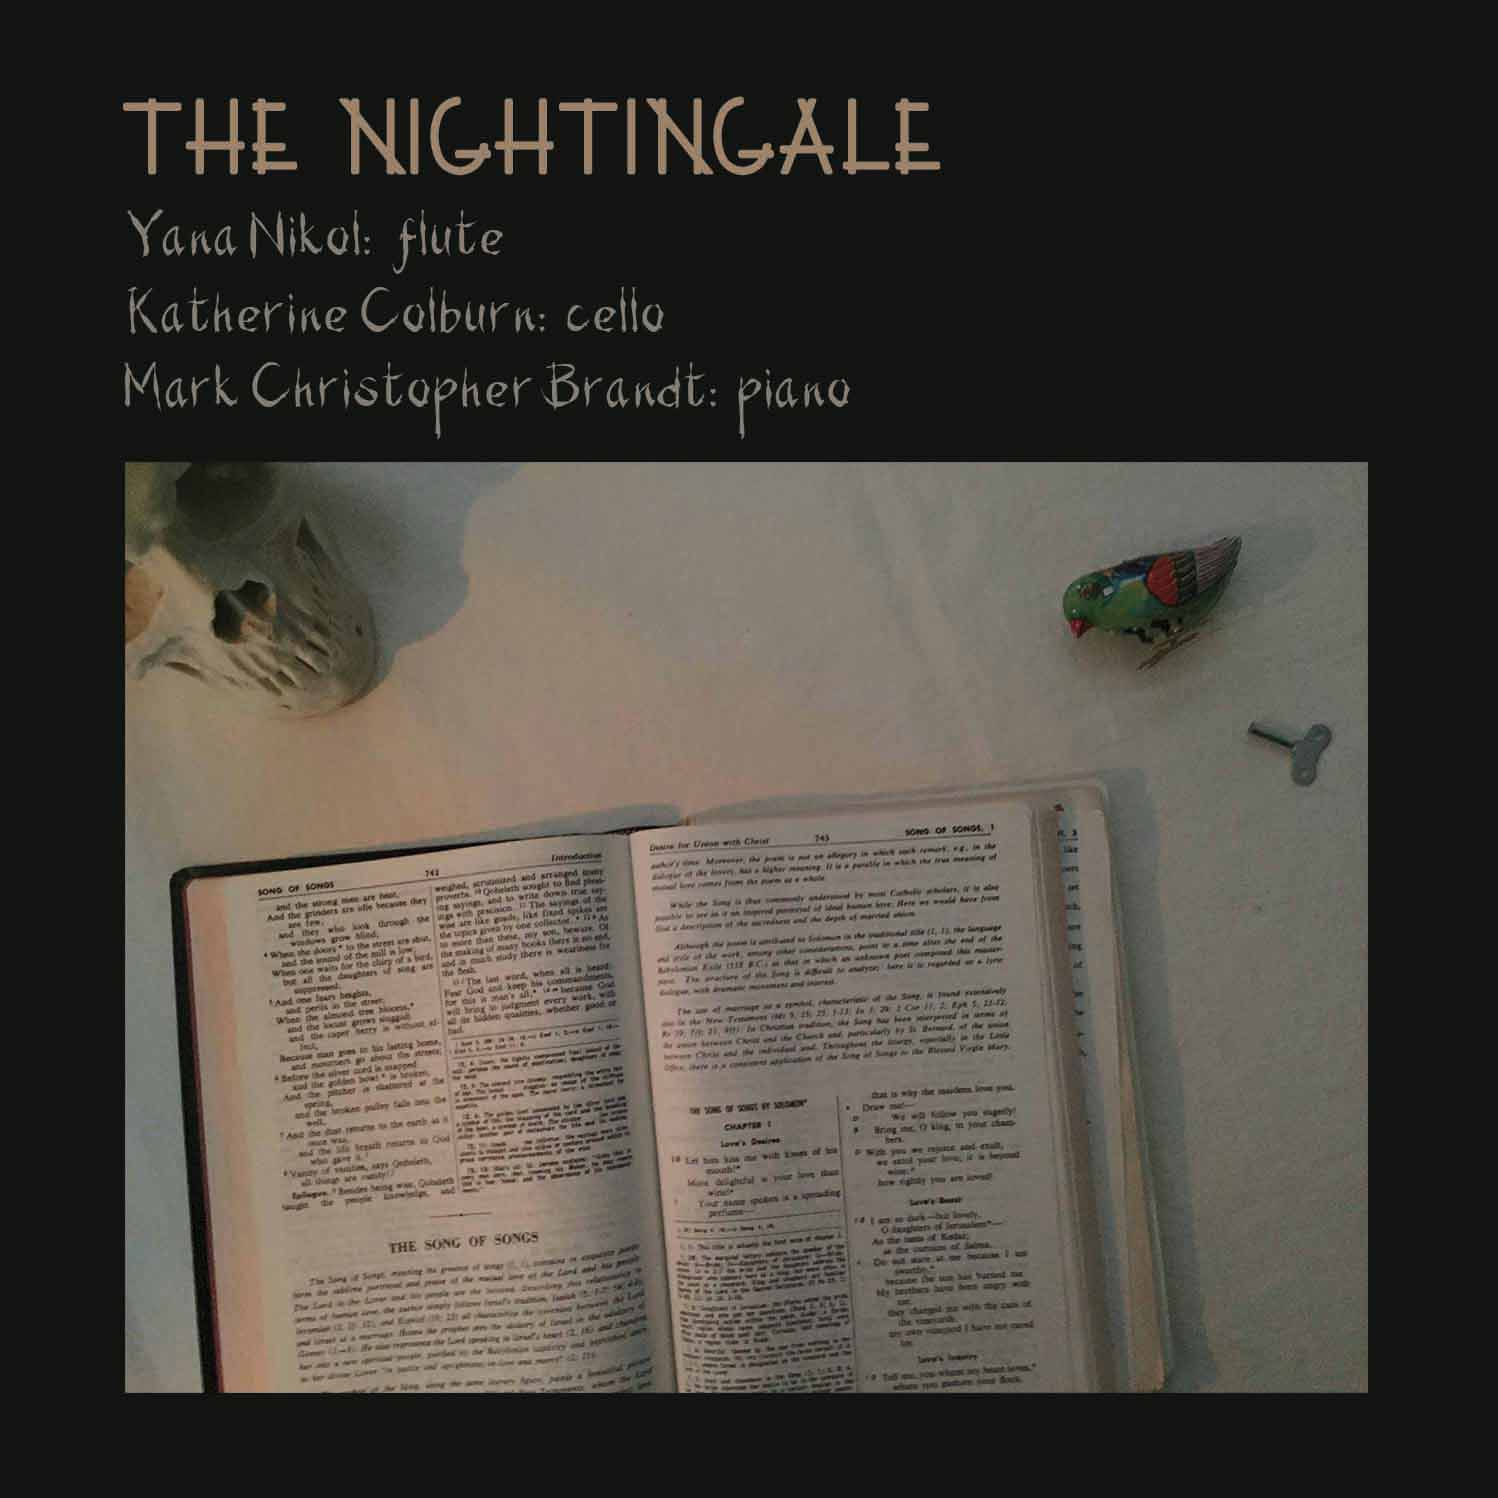 an analysis of the story the nightingale by hans christian andersen The nightingale [hans christian andersen towards the end of the story, the nightingale flies back on hearing that the emperor is on his death bed and sings the.